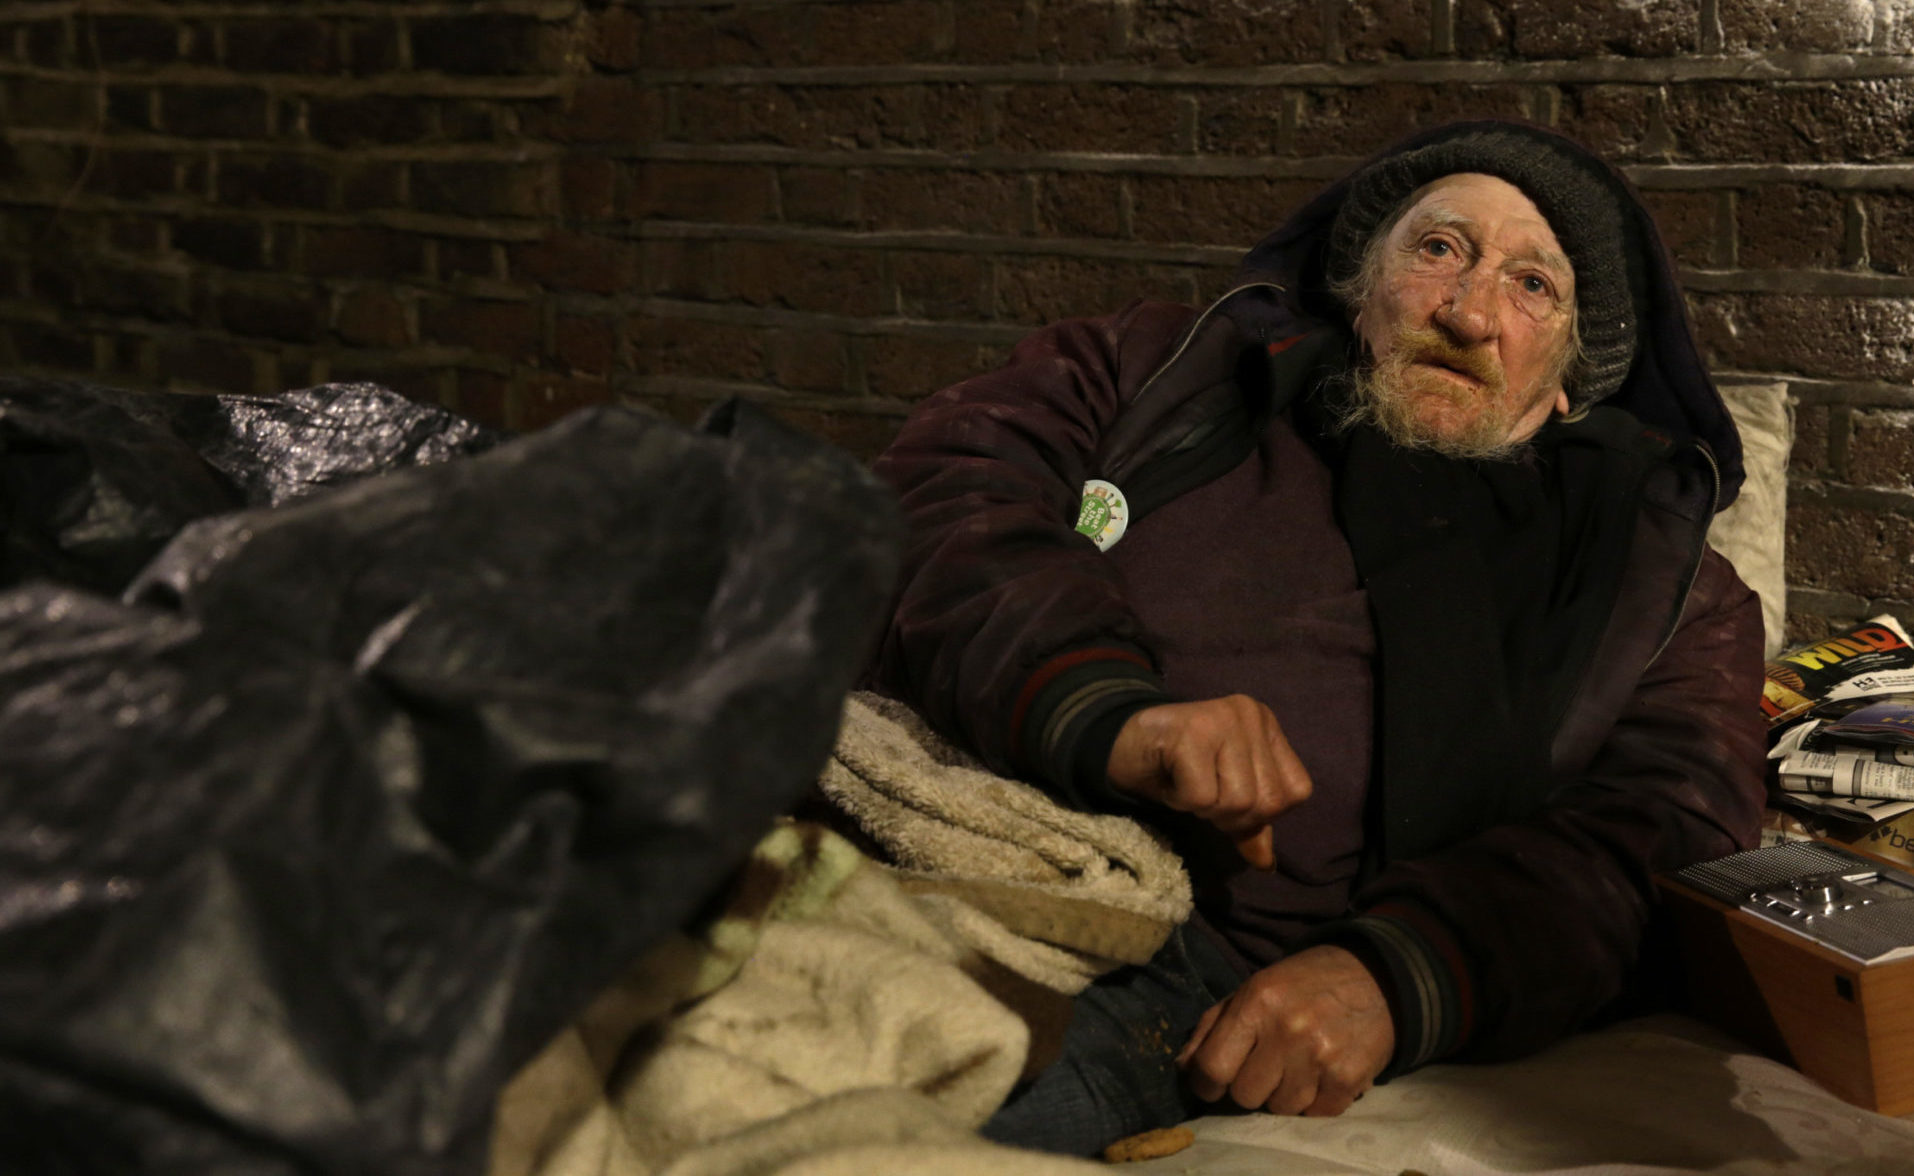 Annual rough sleeping figures for London announced